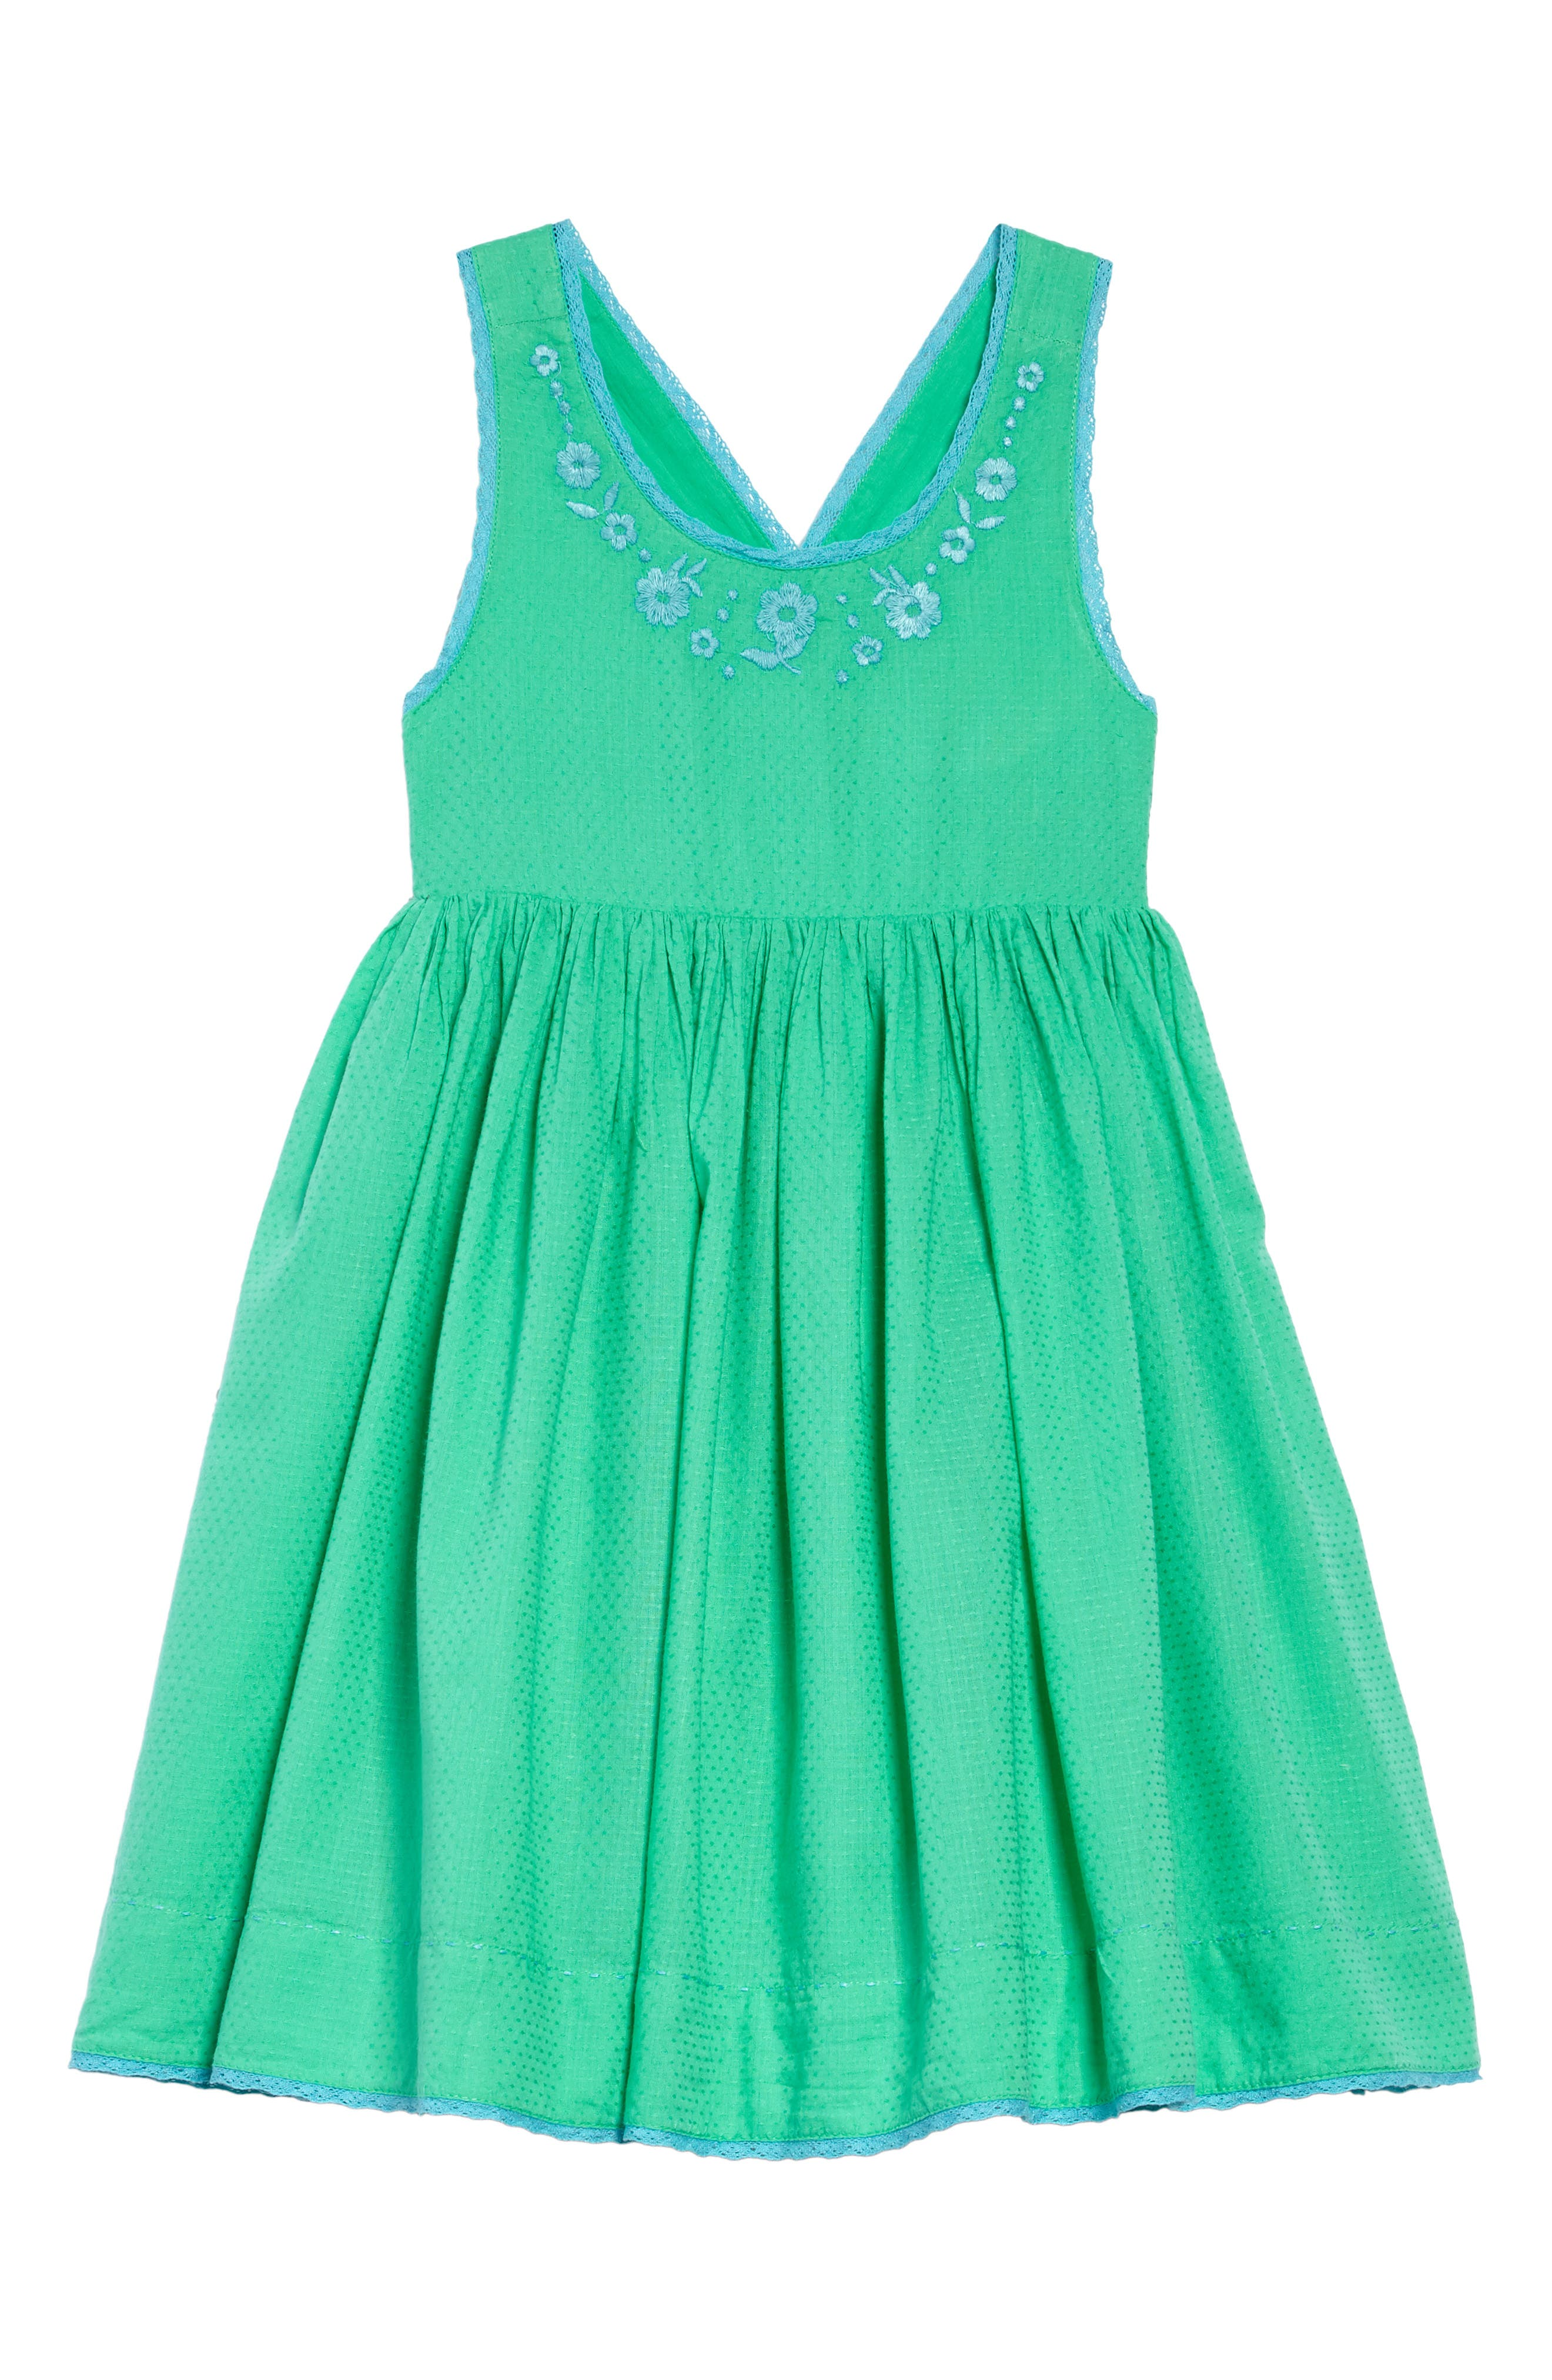 Embroidered Dress,                             Main thumbnail 1, color,                             315